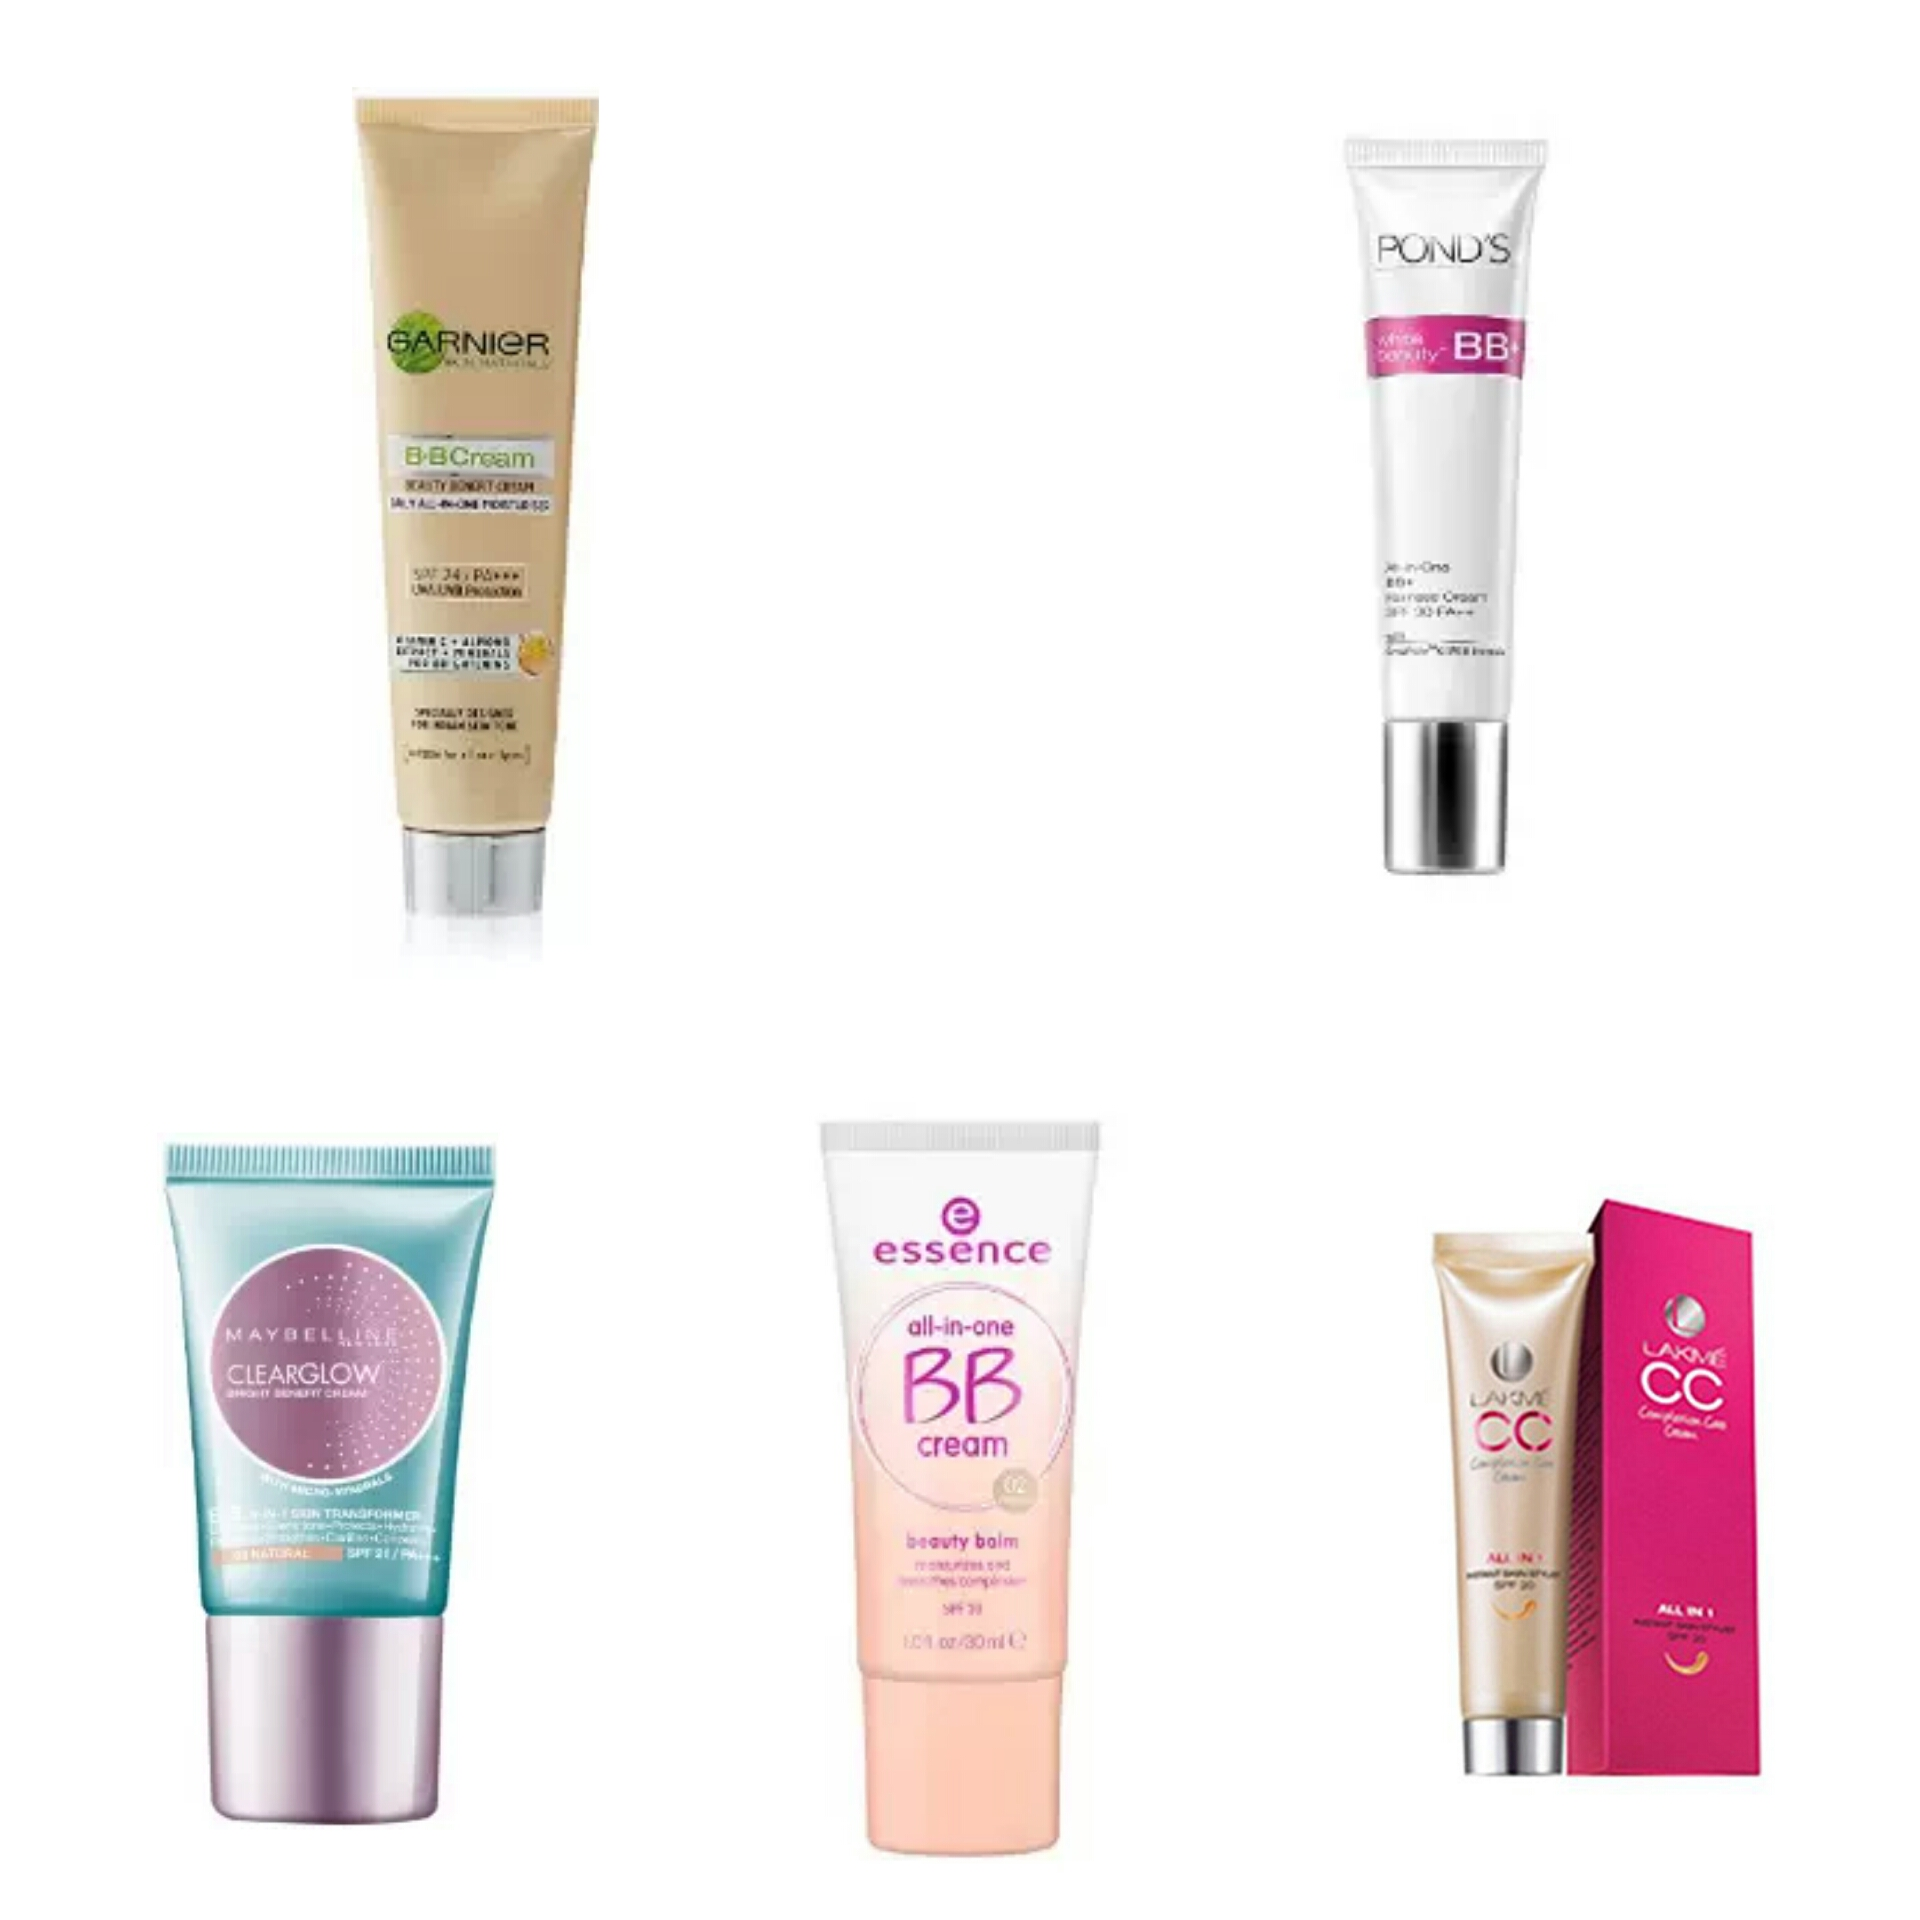 Affordable Makeup Products For College Going Girls   Affordable BB Creams In India   Affordable CC Creams In India